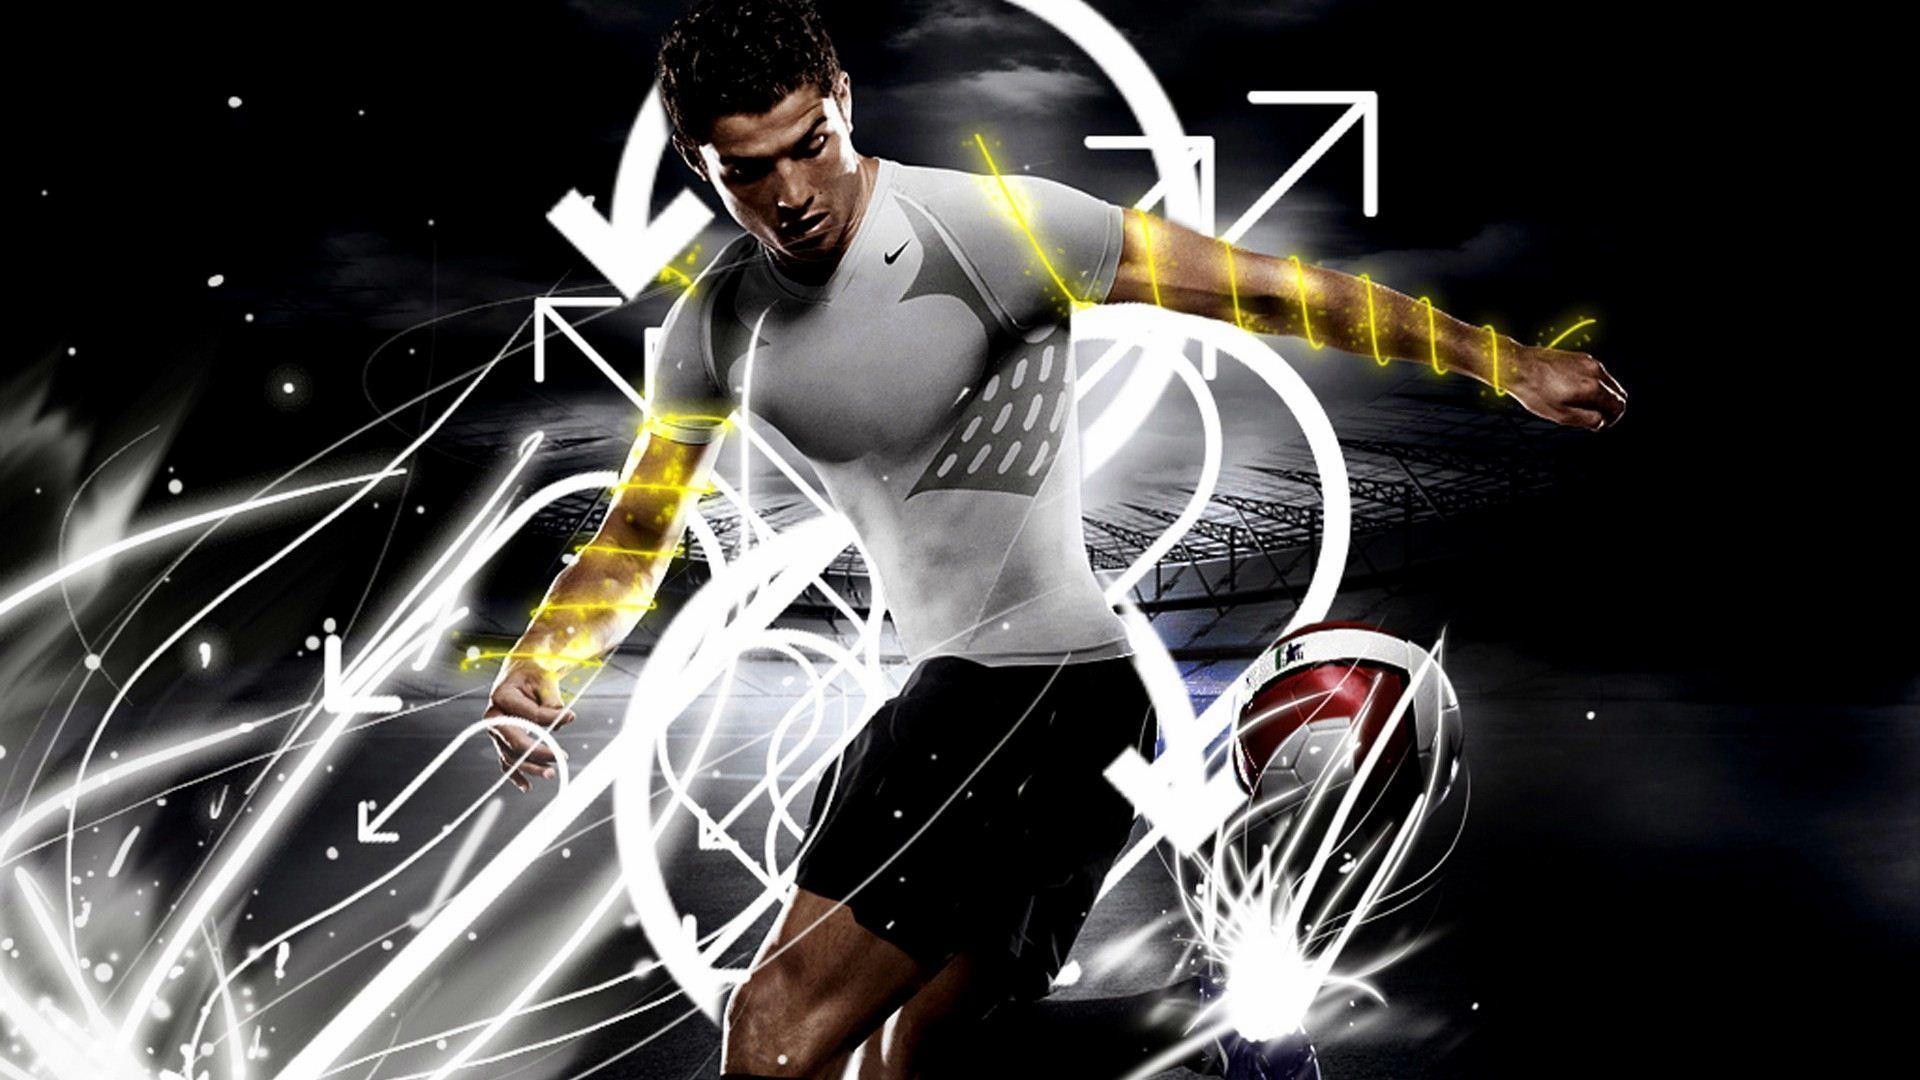 Cristiano ronaldo wallpapers nike mercurial 2015 wallpaper cave cristiano ronaldo nike wallpaper wide or hd male celebrities voltagebd Gallery